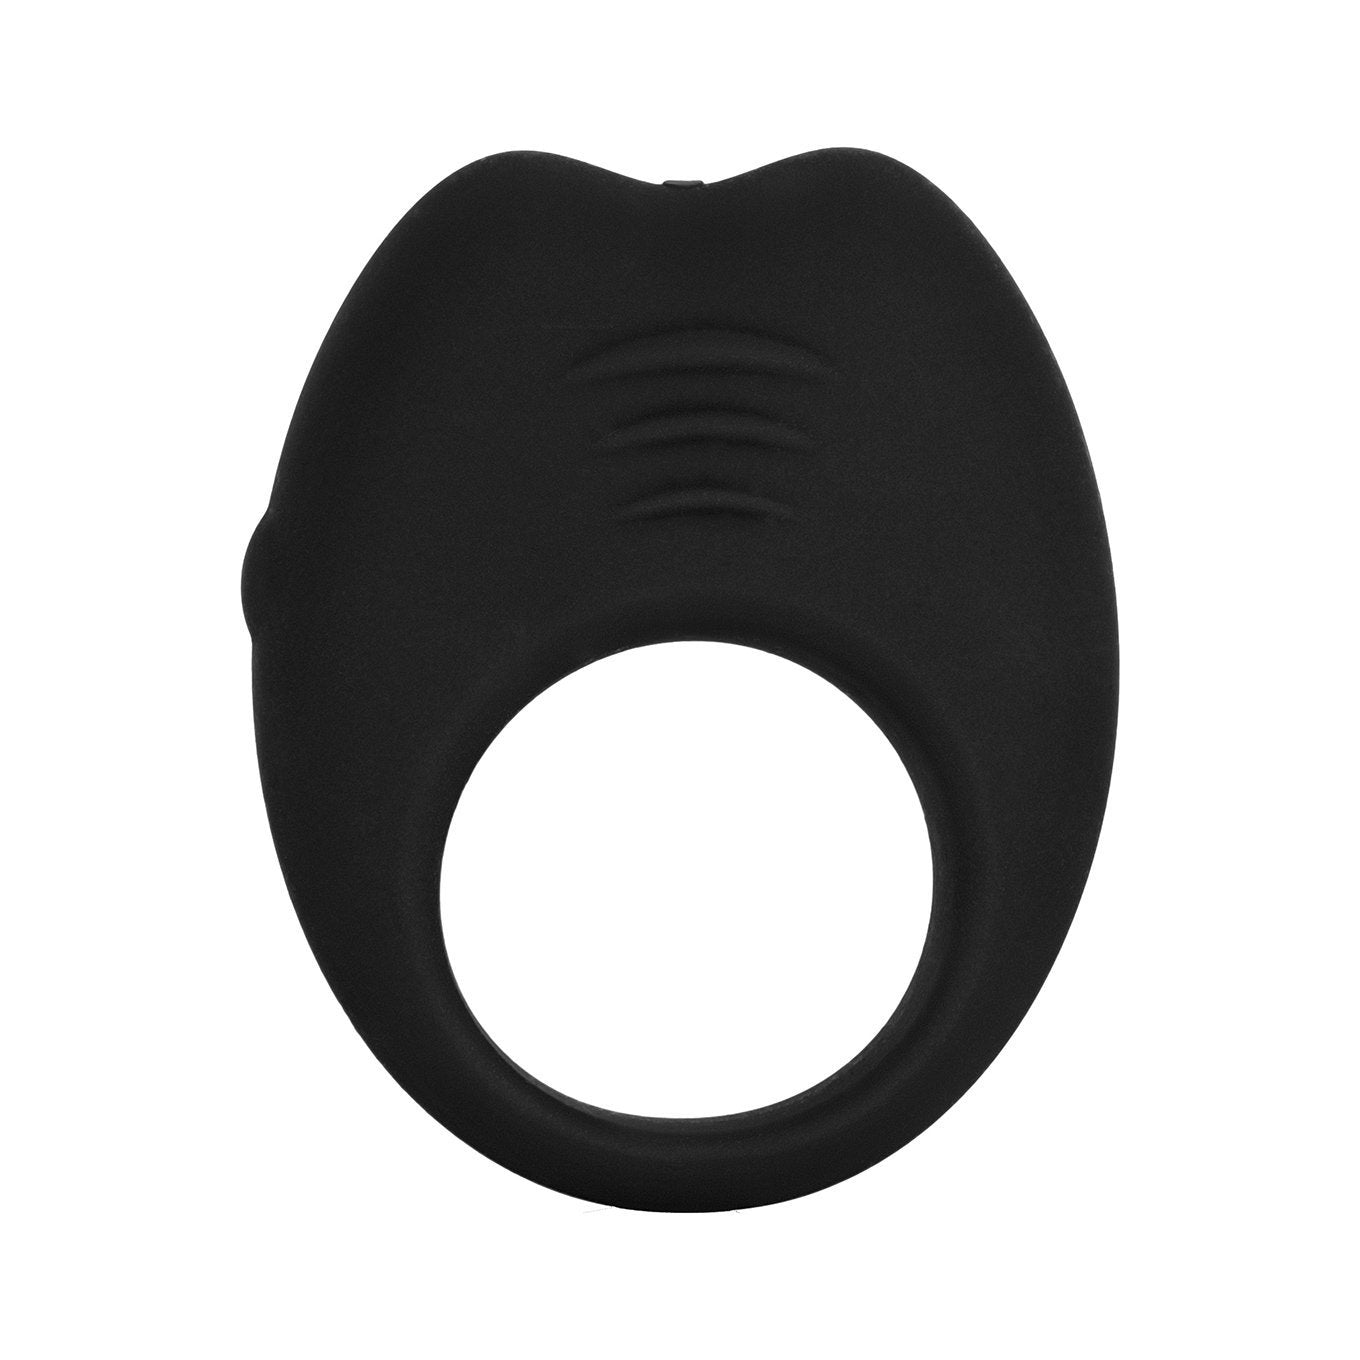 Colt - Rechargeable Silicone Cock Ring (Black) | CherryAffairs Singapore